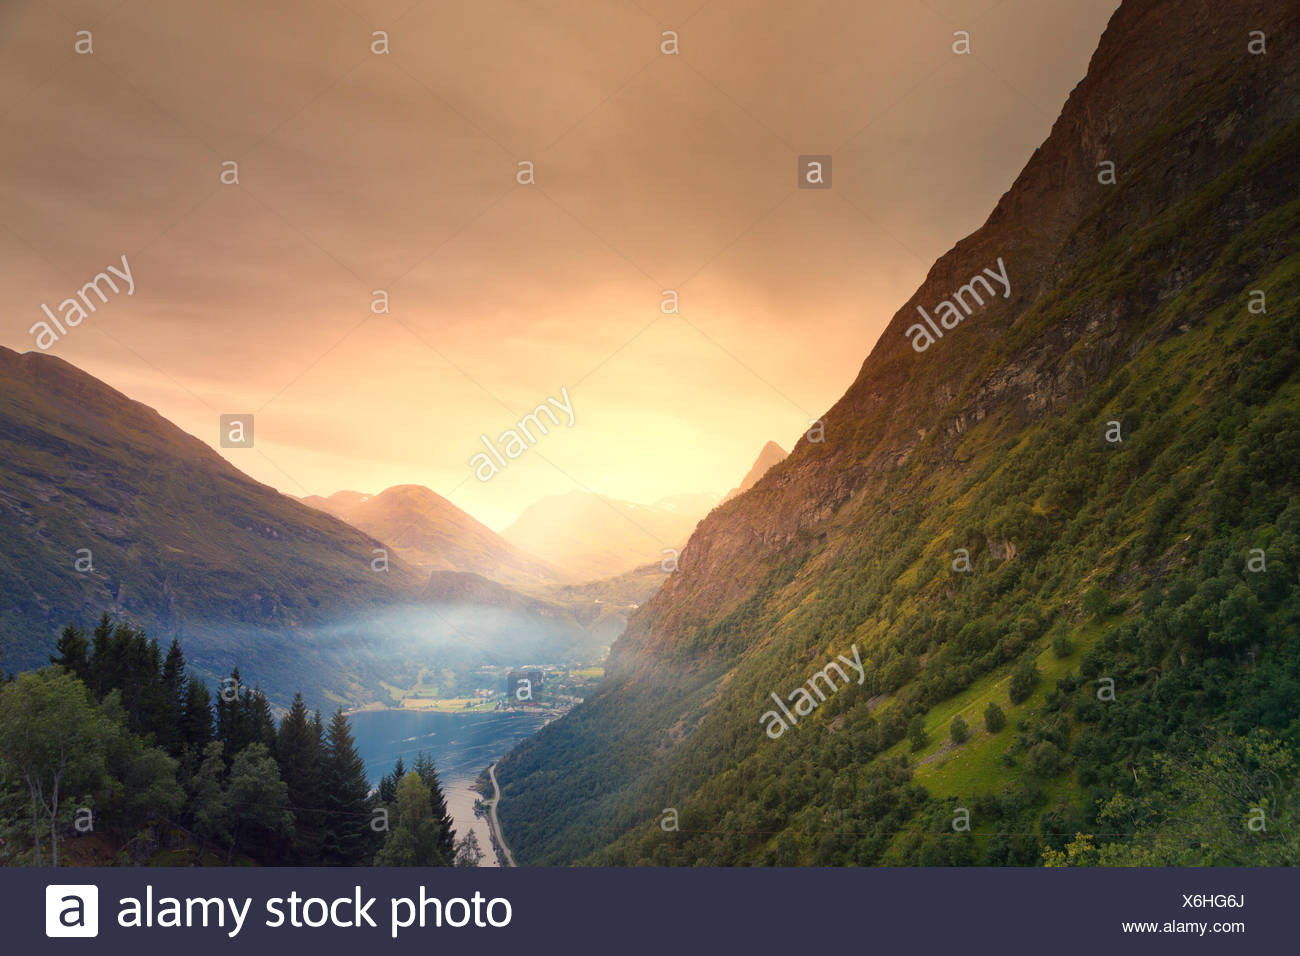 Norway, More og Romsdal, Sunnmore, Geiranger, Elevated view of misty lake in mountain valley - Stock Image